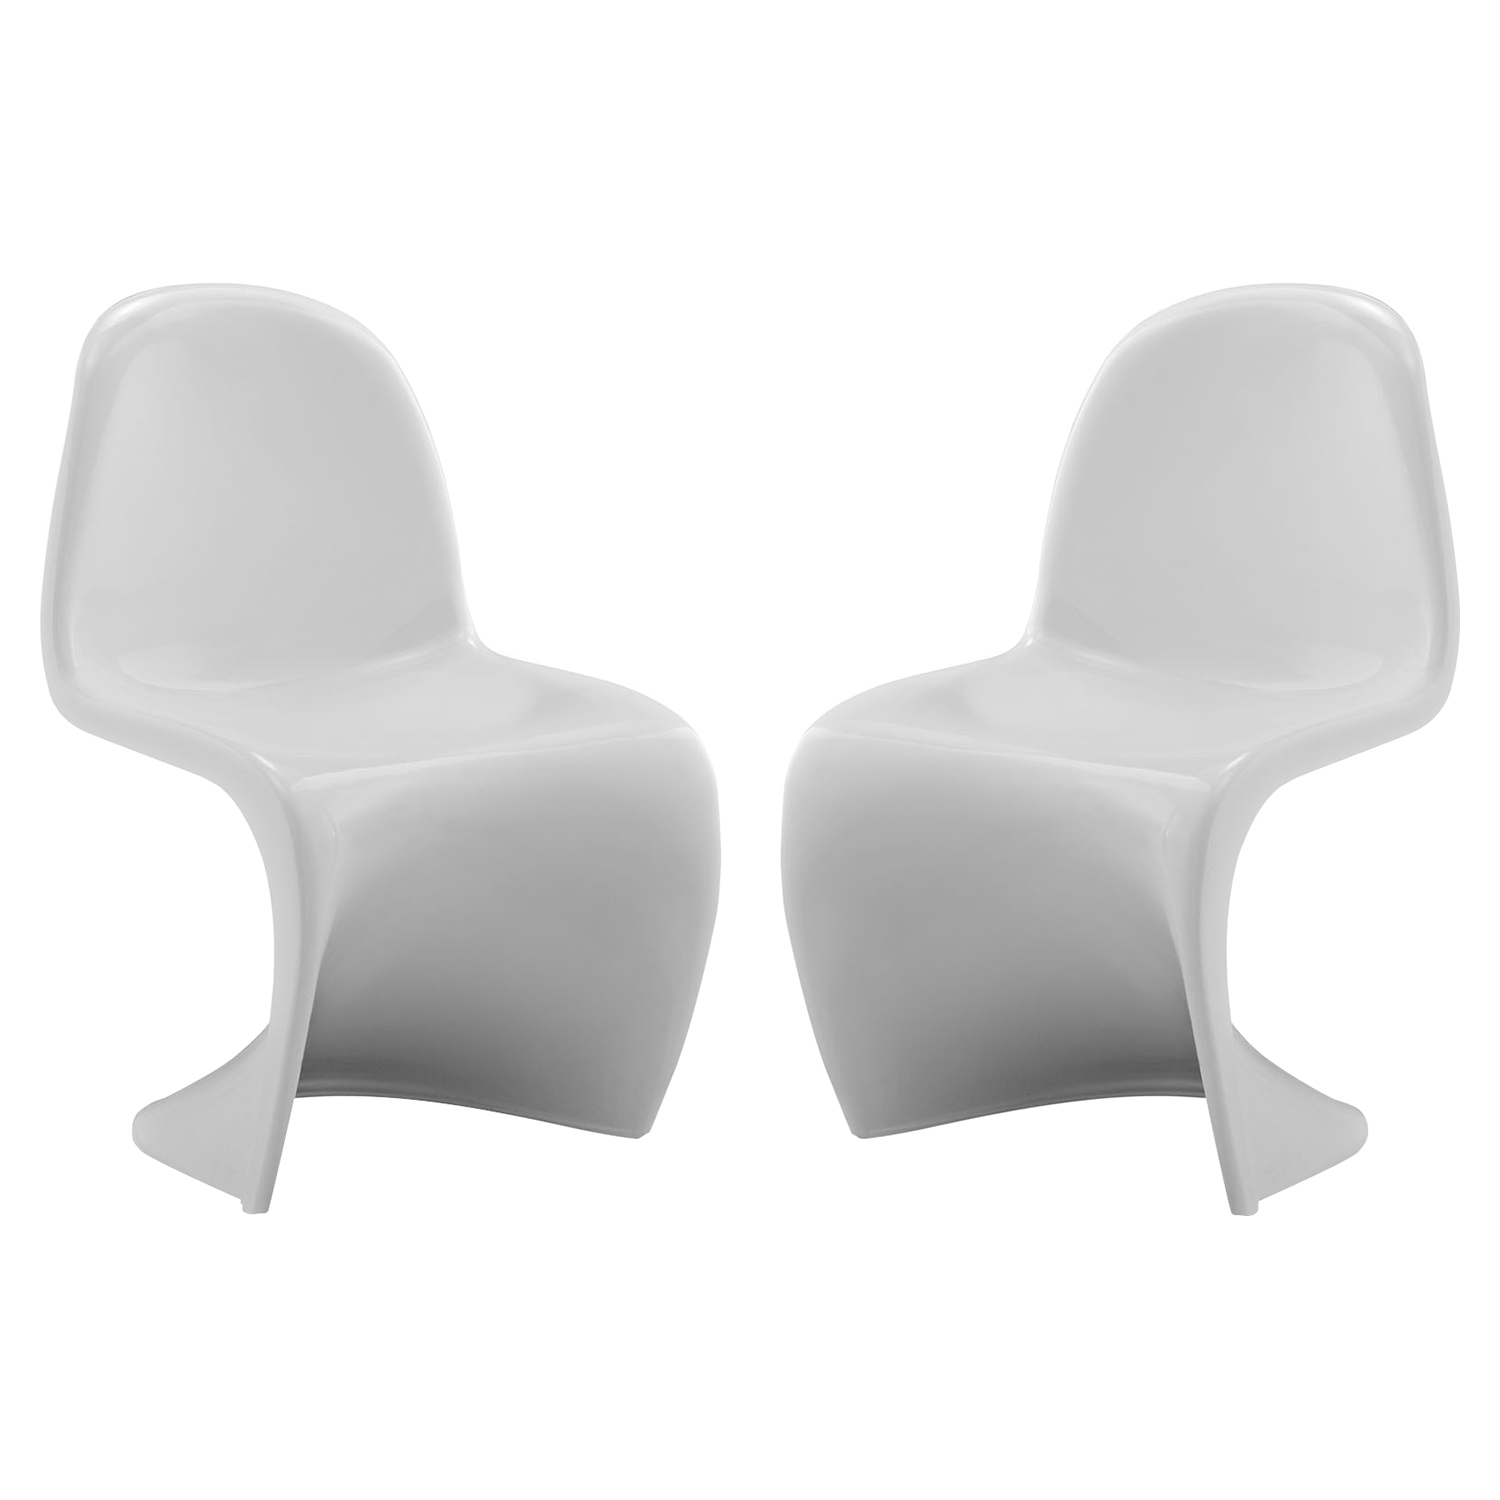 Slither Kids Chair - High Back, White (Set of 2) - EEI-1252-WHI